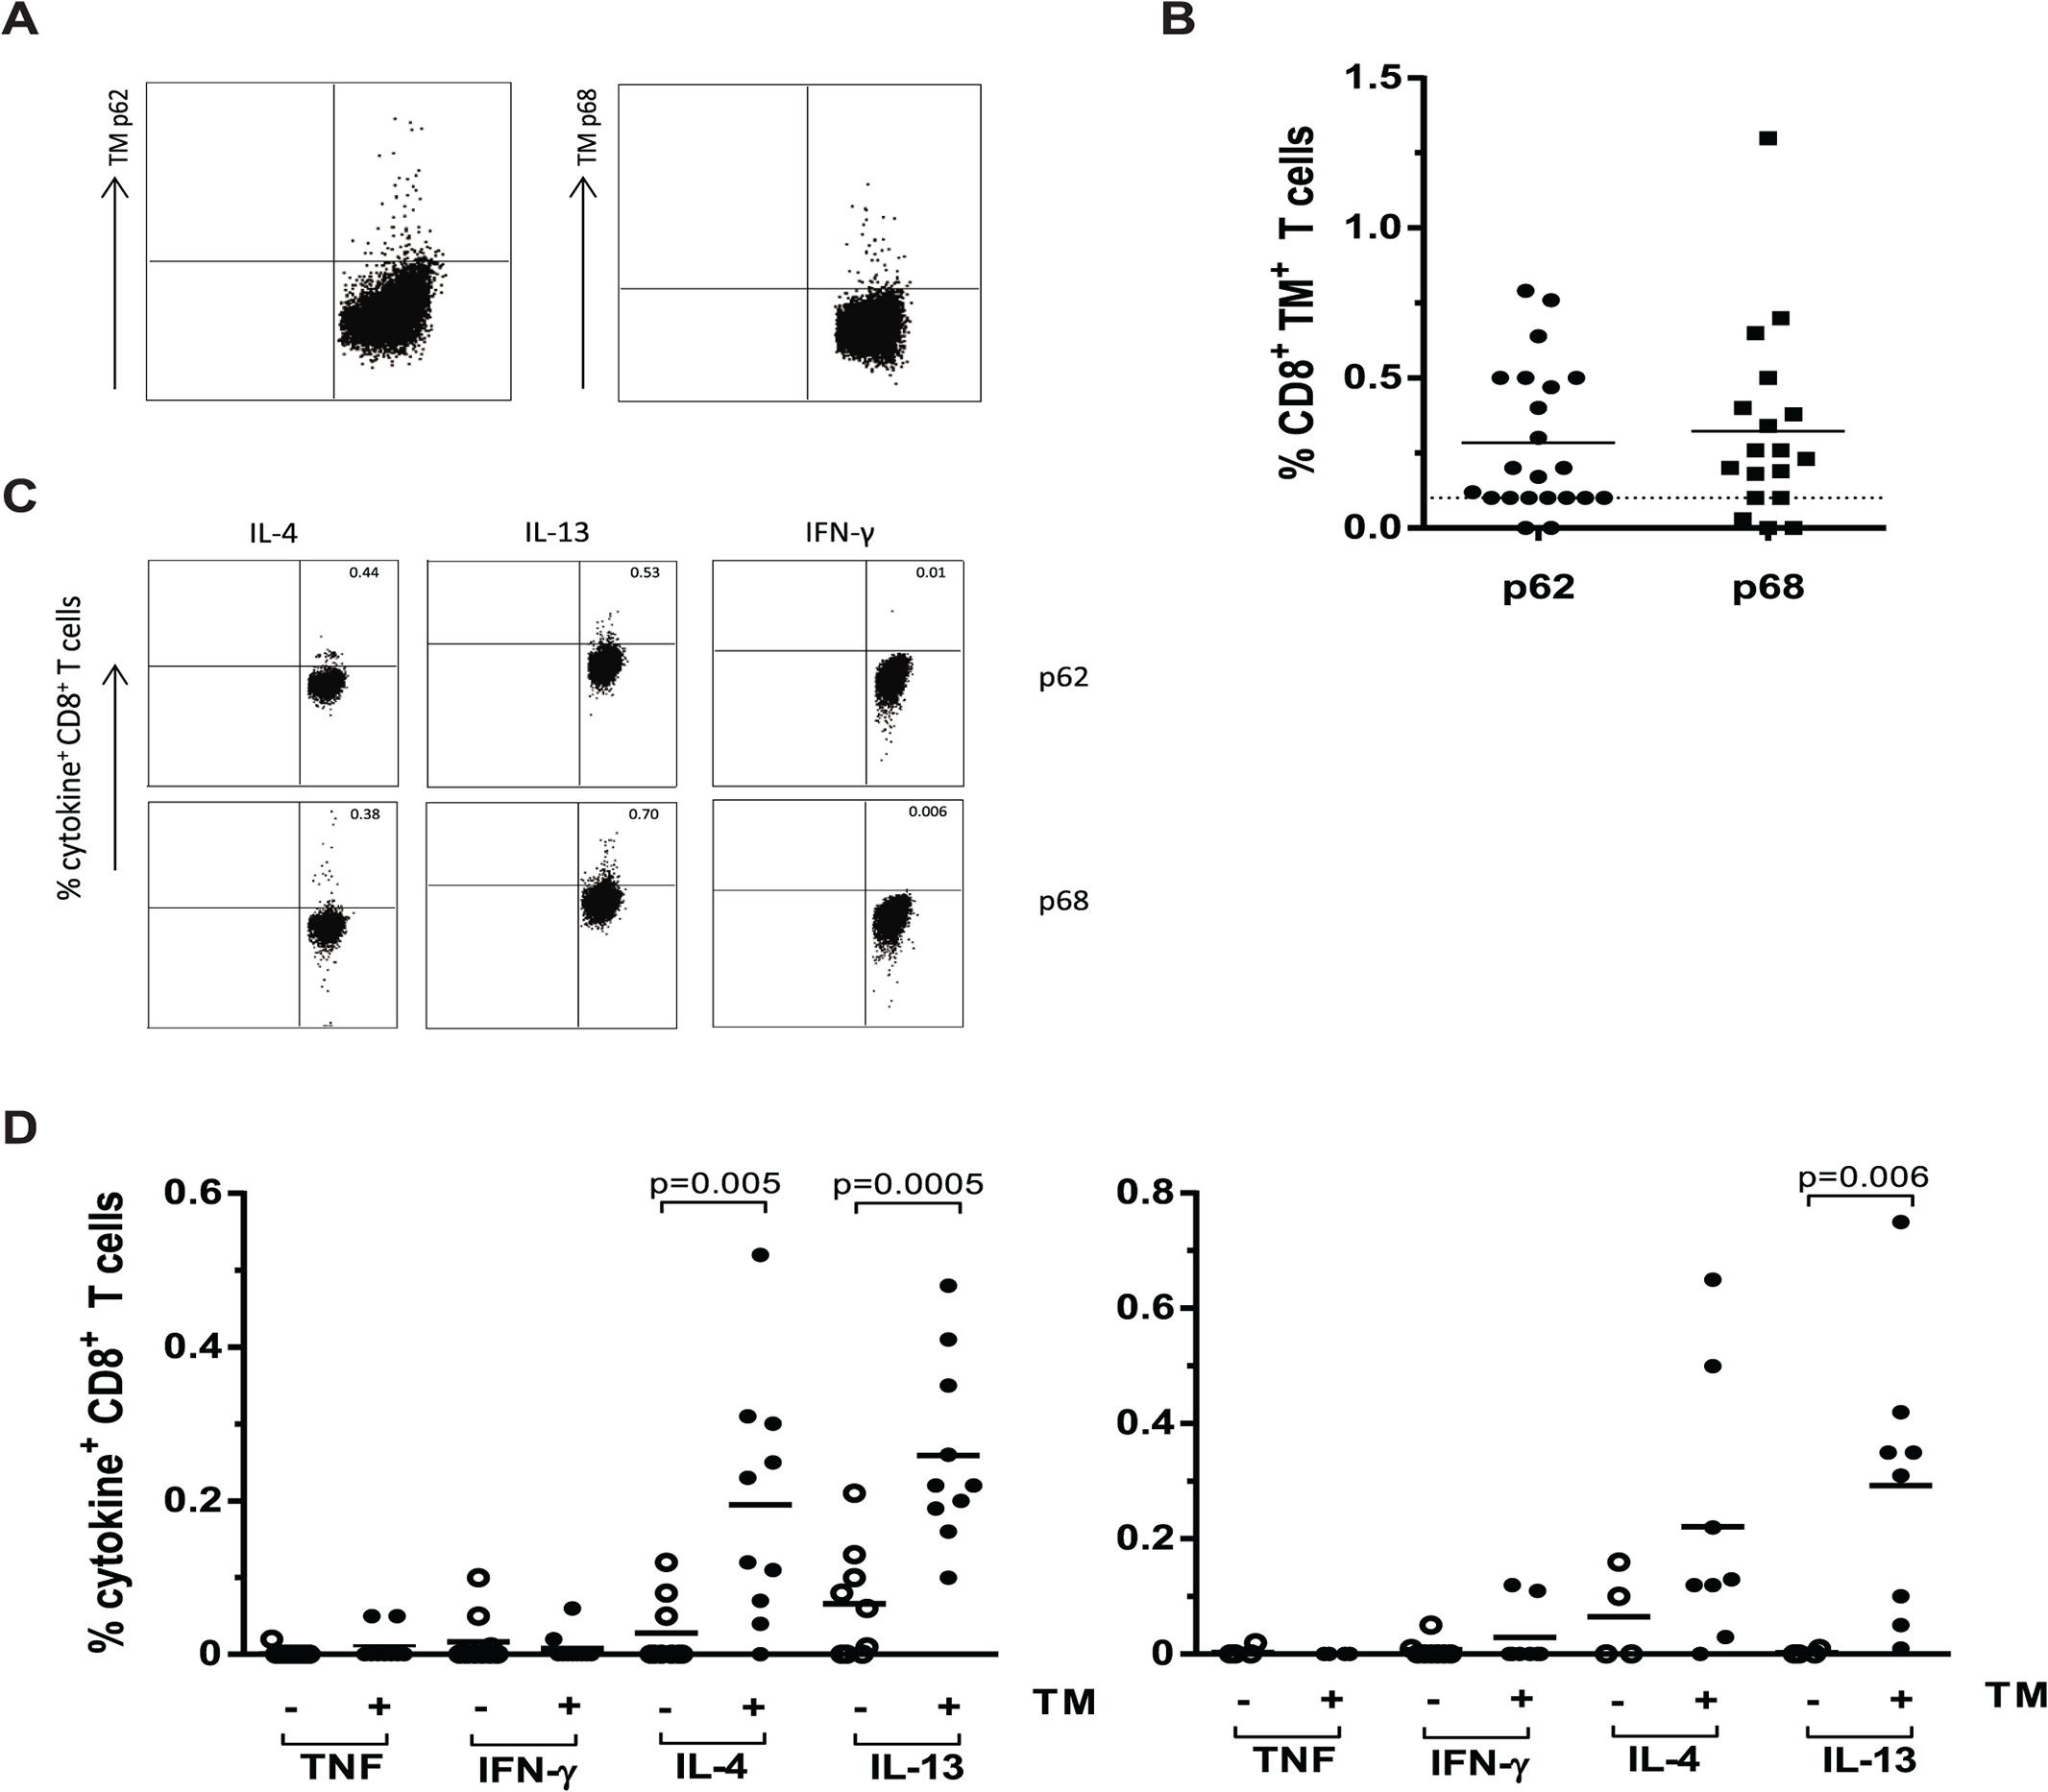 CD8<sup>+</sup> T-cells from TB patients bind HLA-E/ peptide tetramers and produce Th2 cytokines following peptide stimulation.